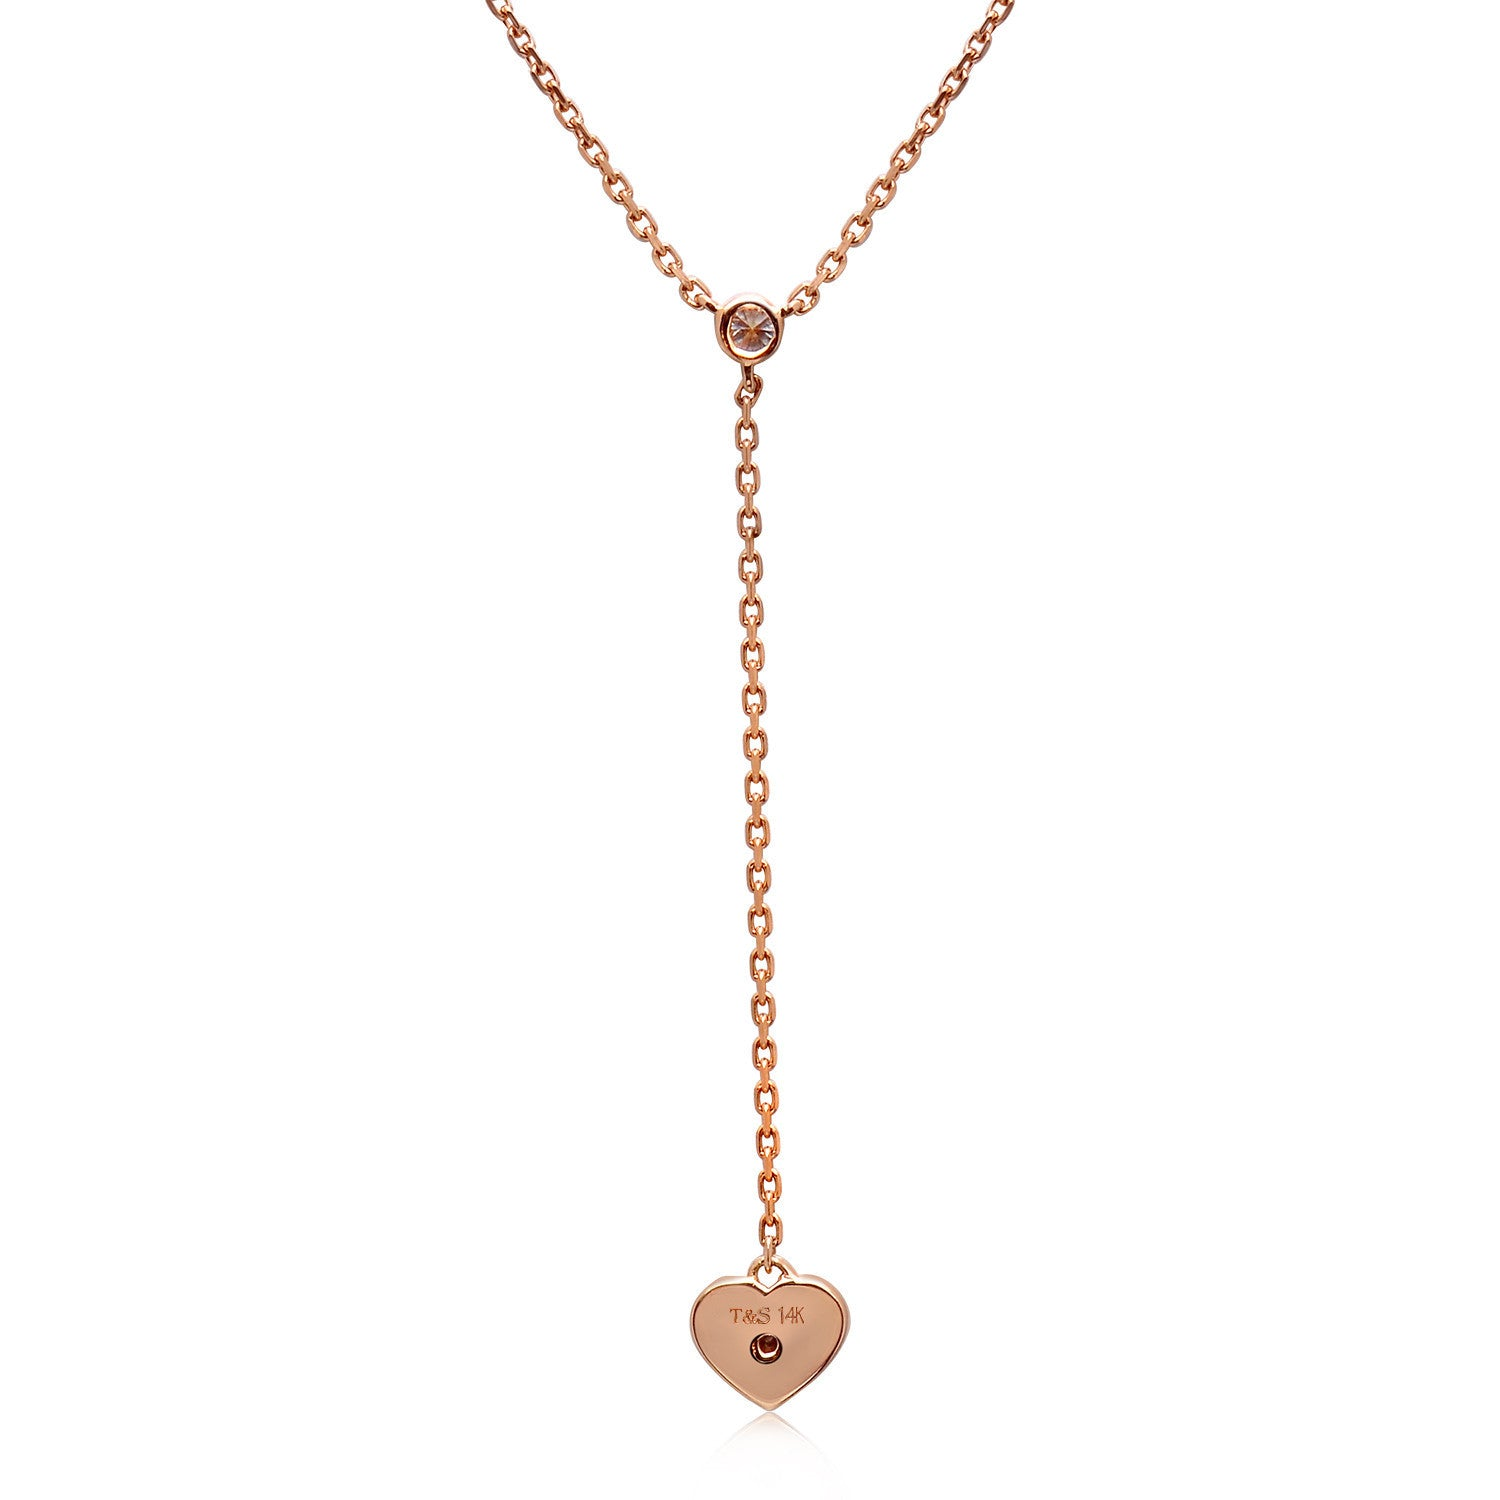 BCRF 14K Rose Gold Heart Diamond Lariat Necklace